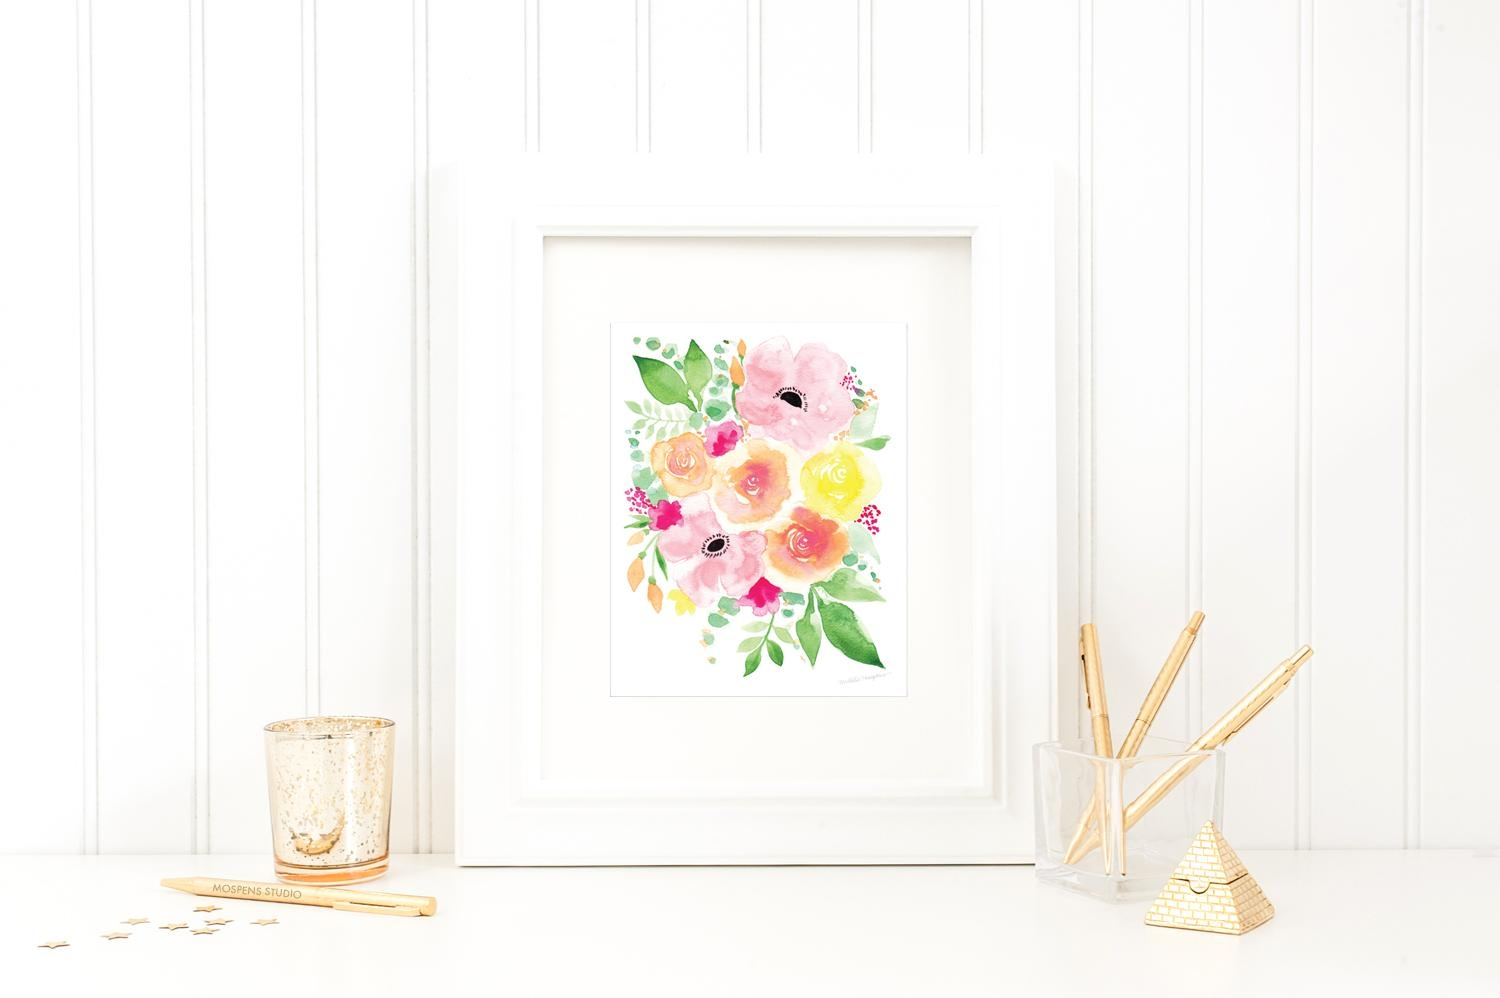 Pretty Floral Art Prints | Mospens Studio With Regard To Floral & Plant Wall Art (Image 16 of 20)